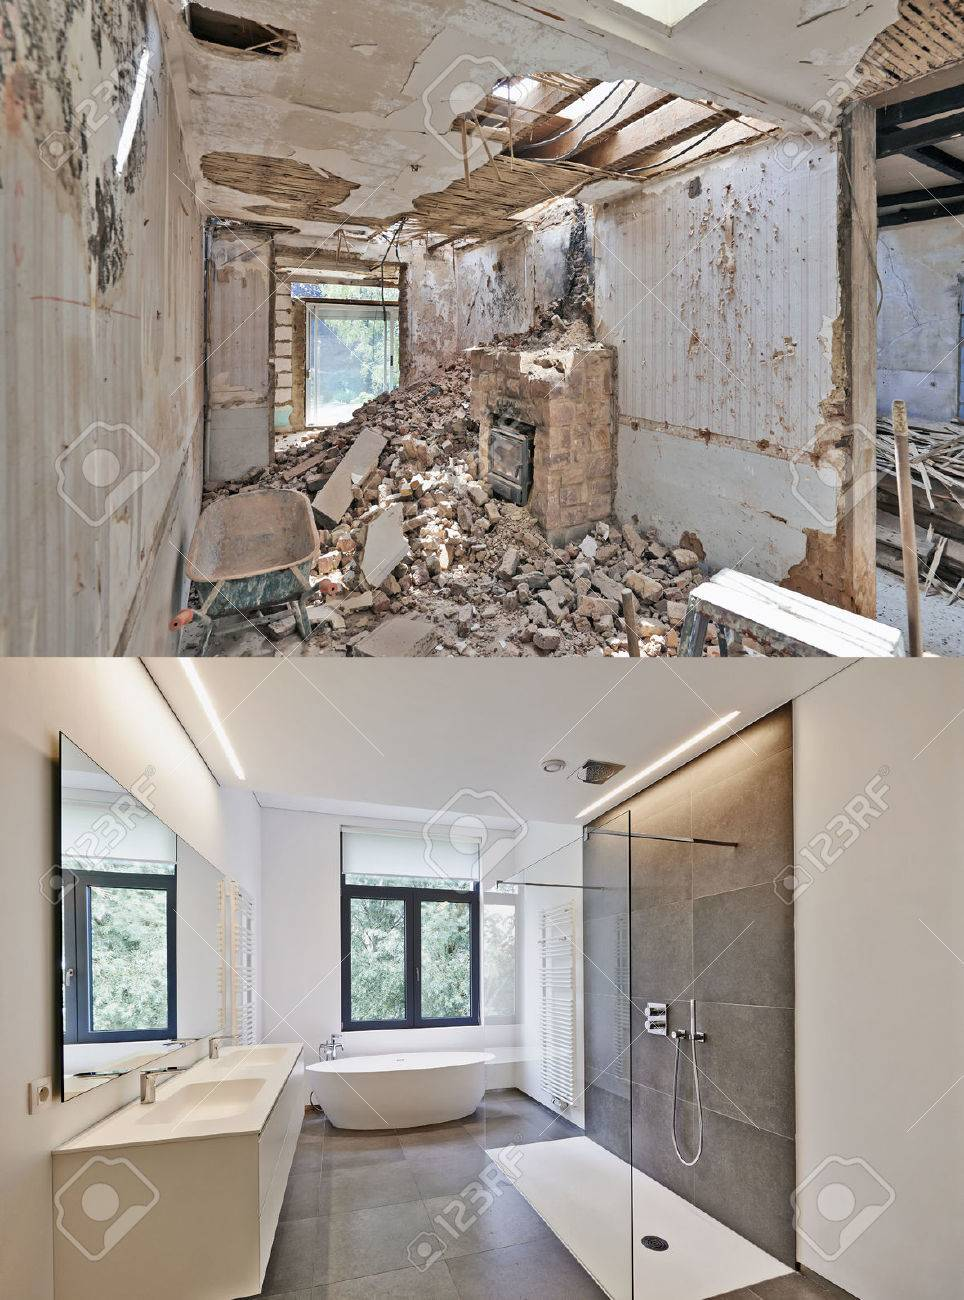 Renovation of a bathroom Before and after in vertical format Standard-Bild - 51686290